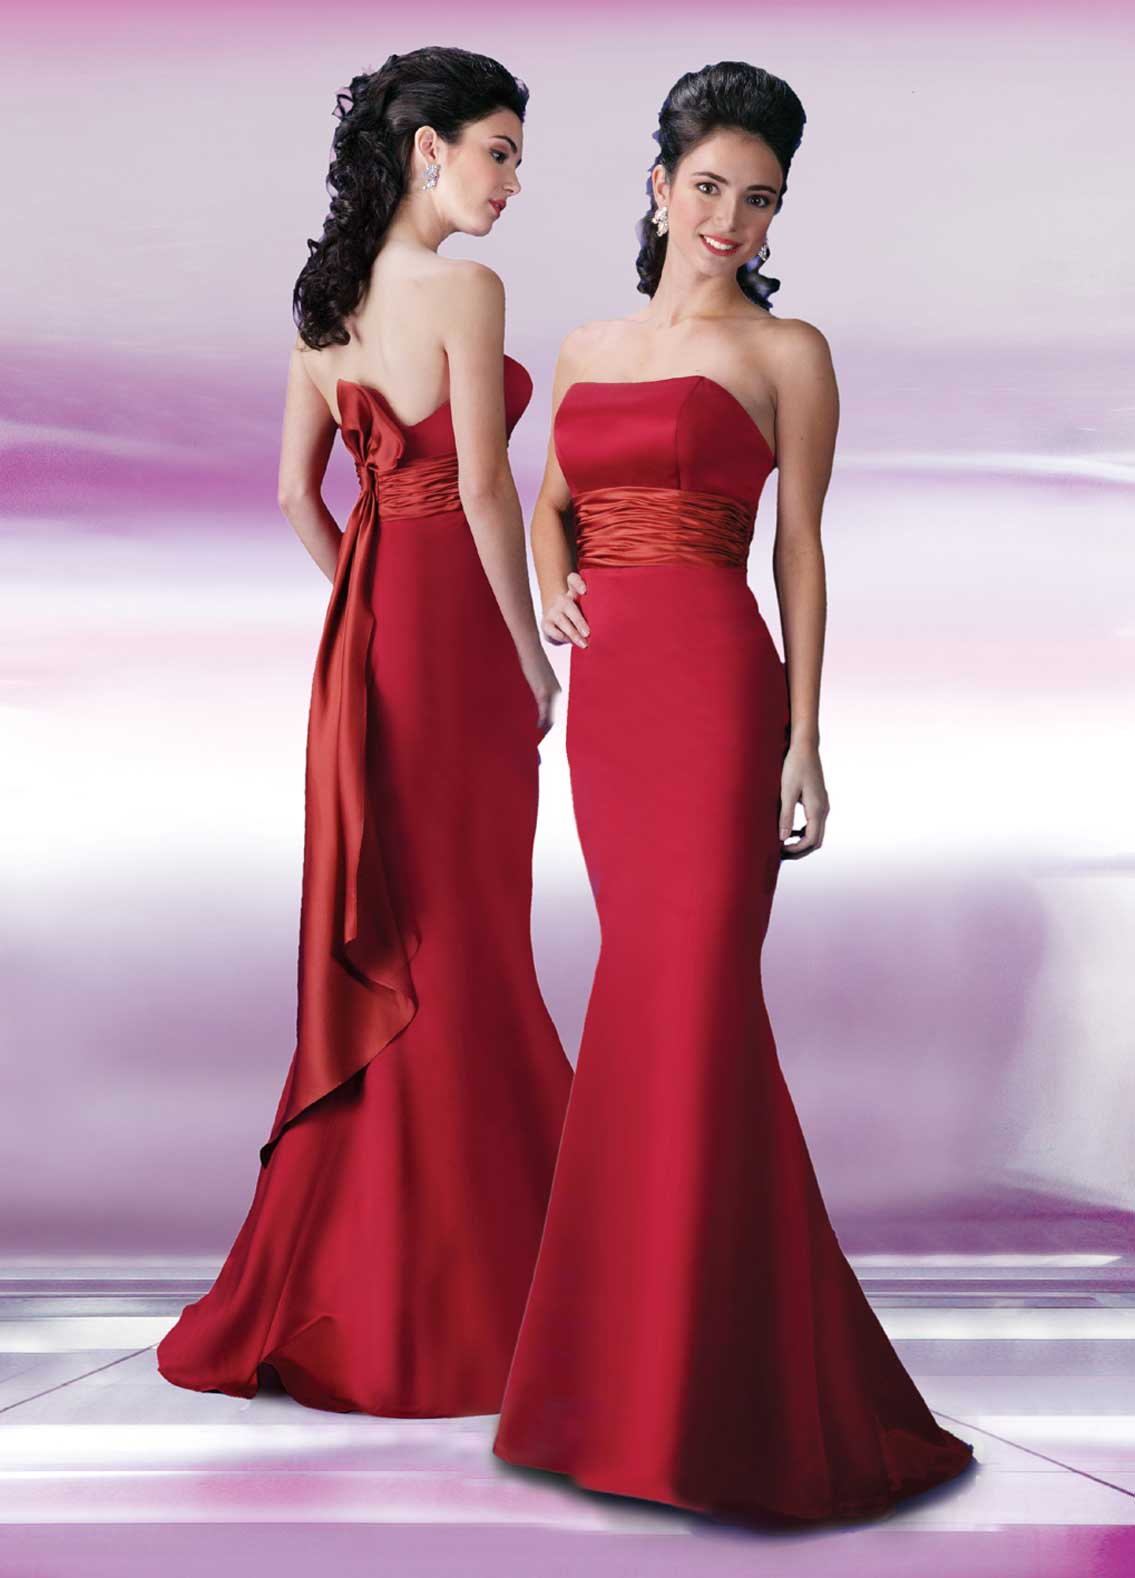 Red wedding dress designs in 2012 wedding dress for Design wedding dress online